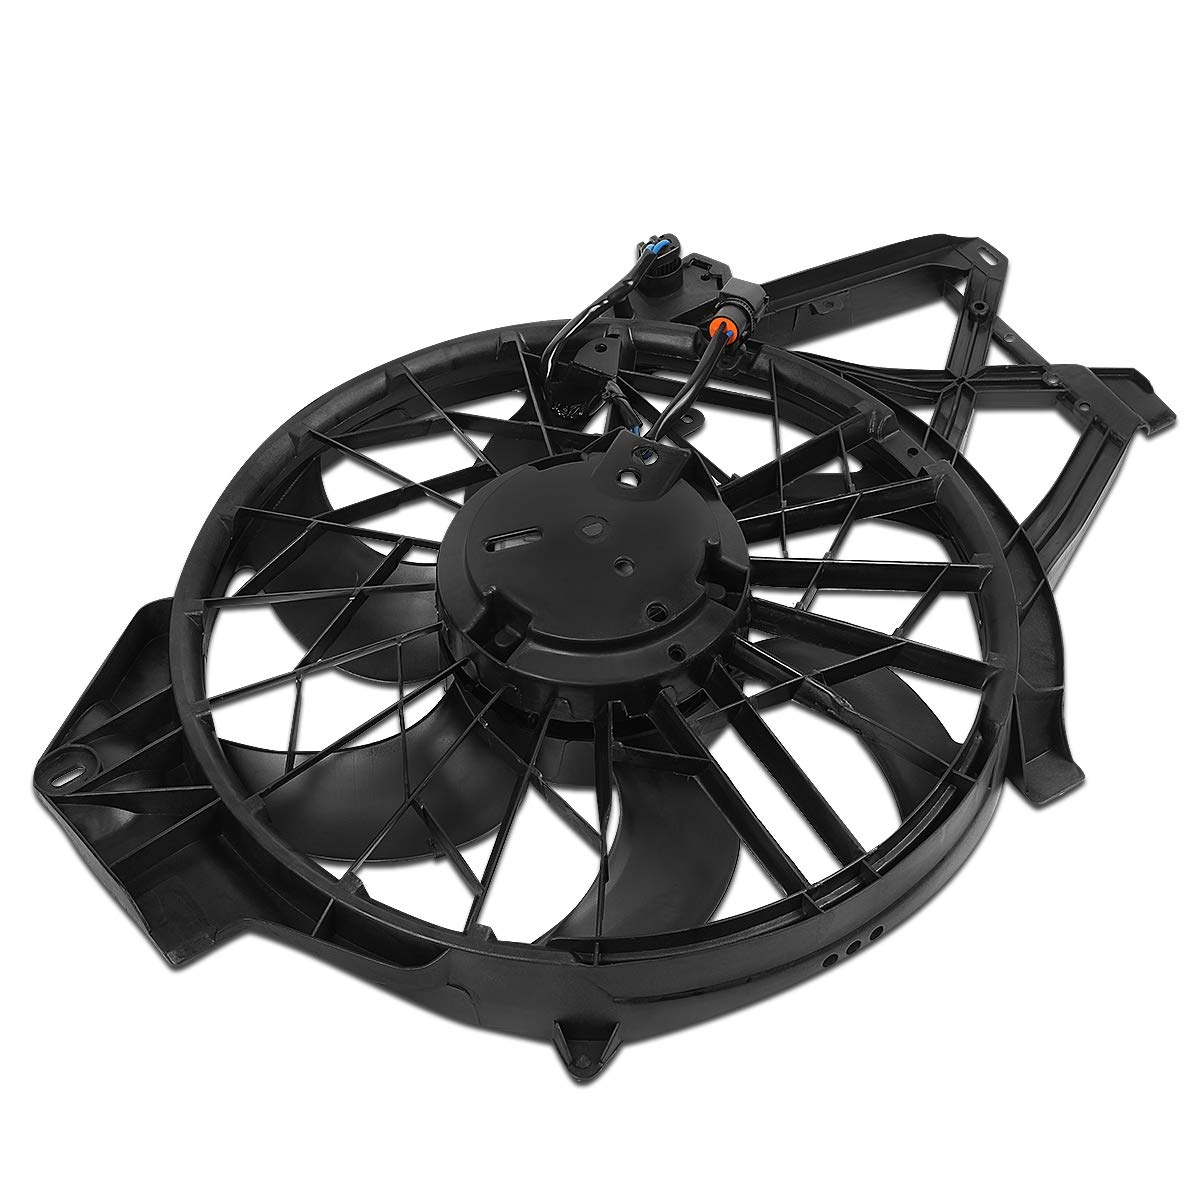 FO3115120 OE Style Radiator Cooling Fan Assembly for Ford Mustang 4.6L DOHC SOHC SC 01-04